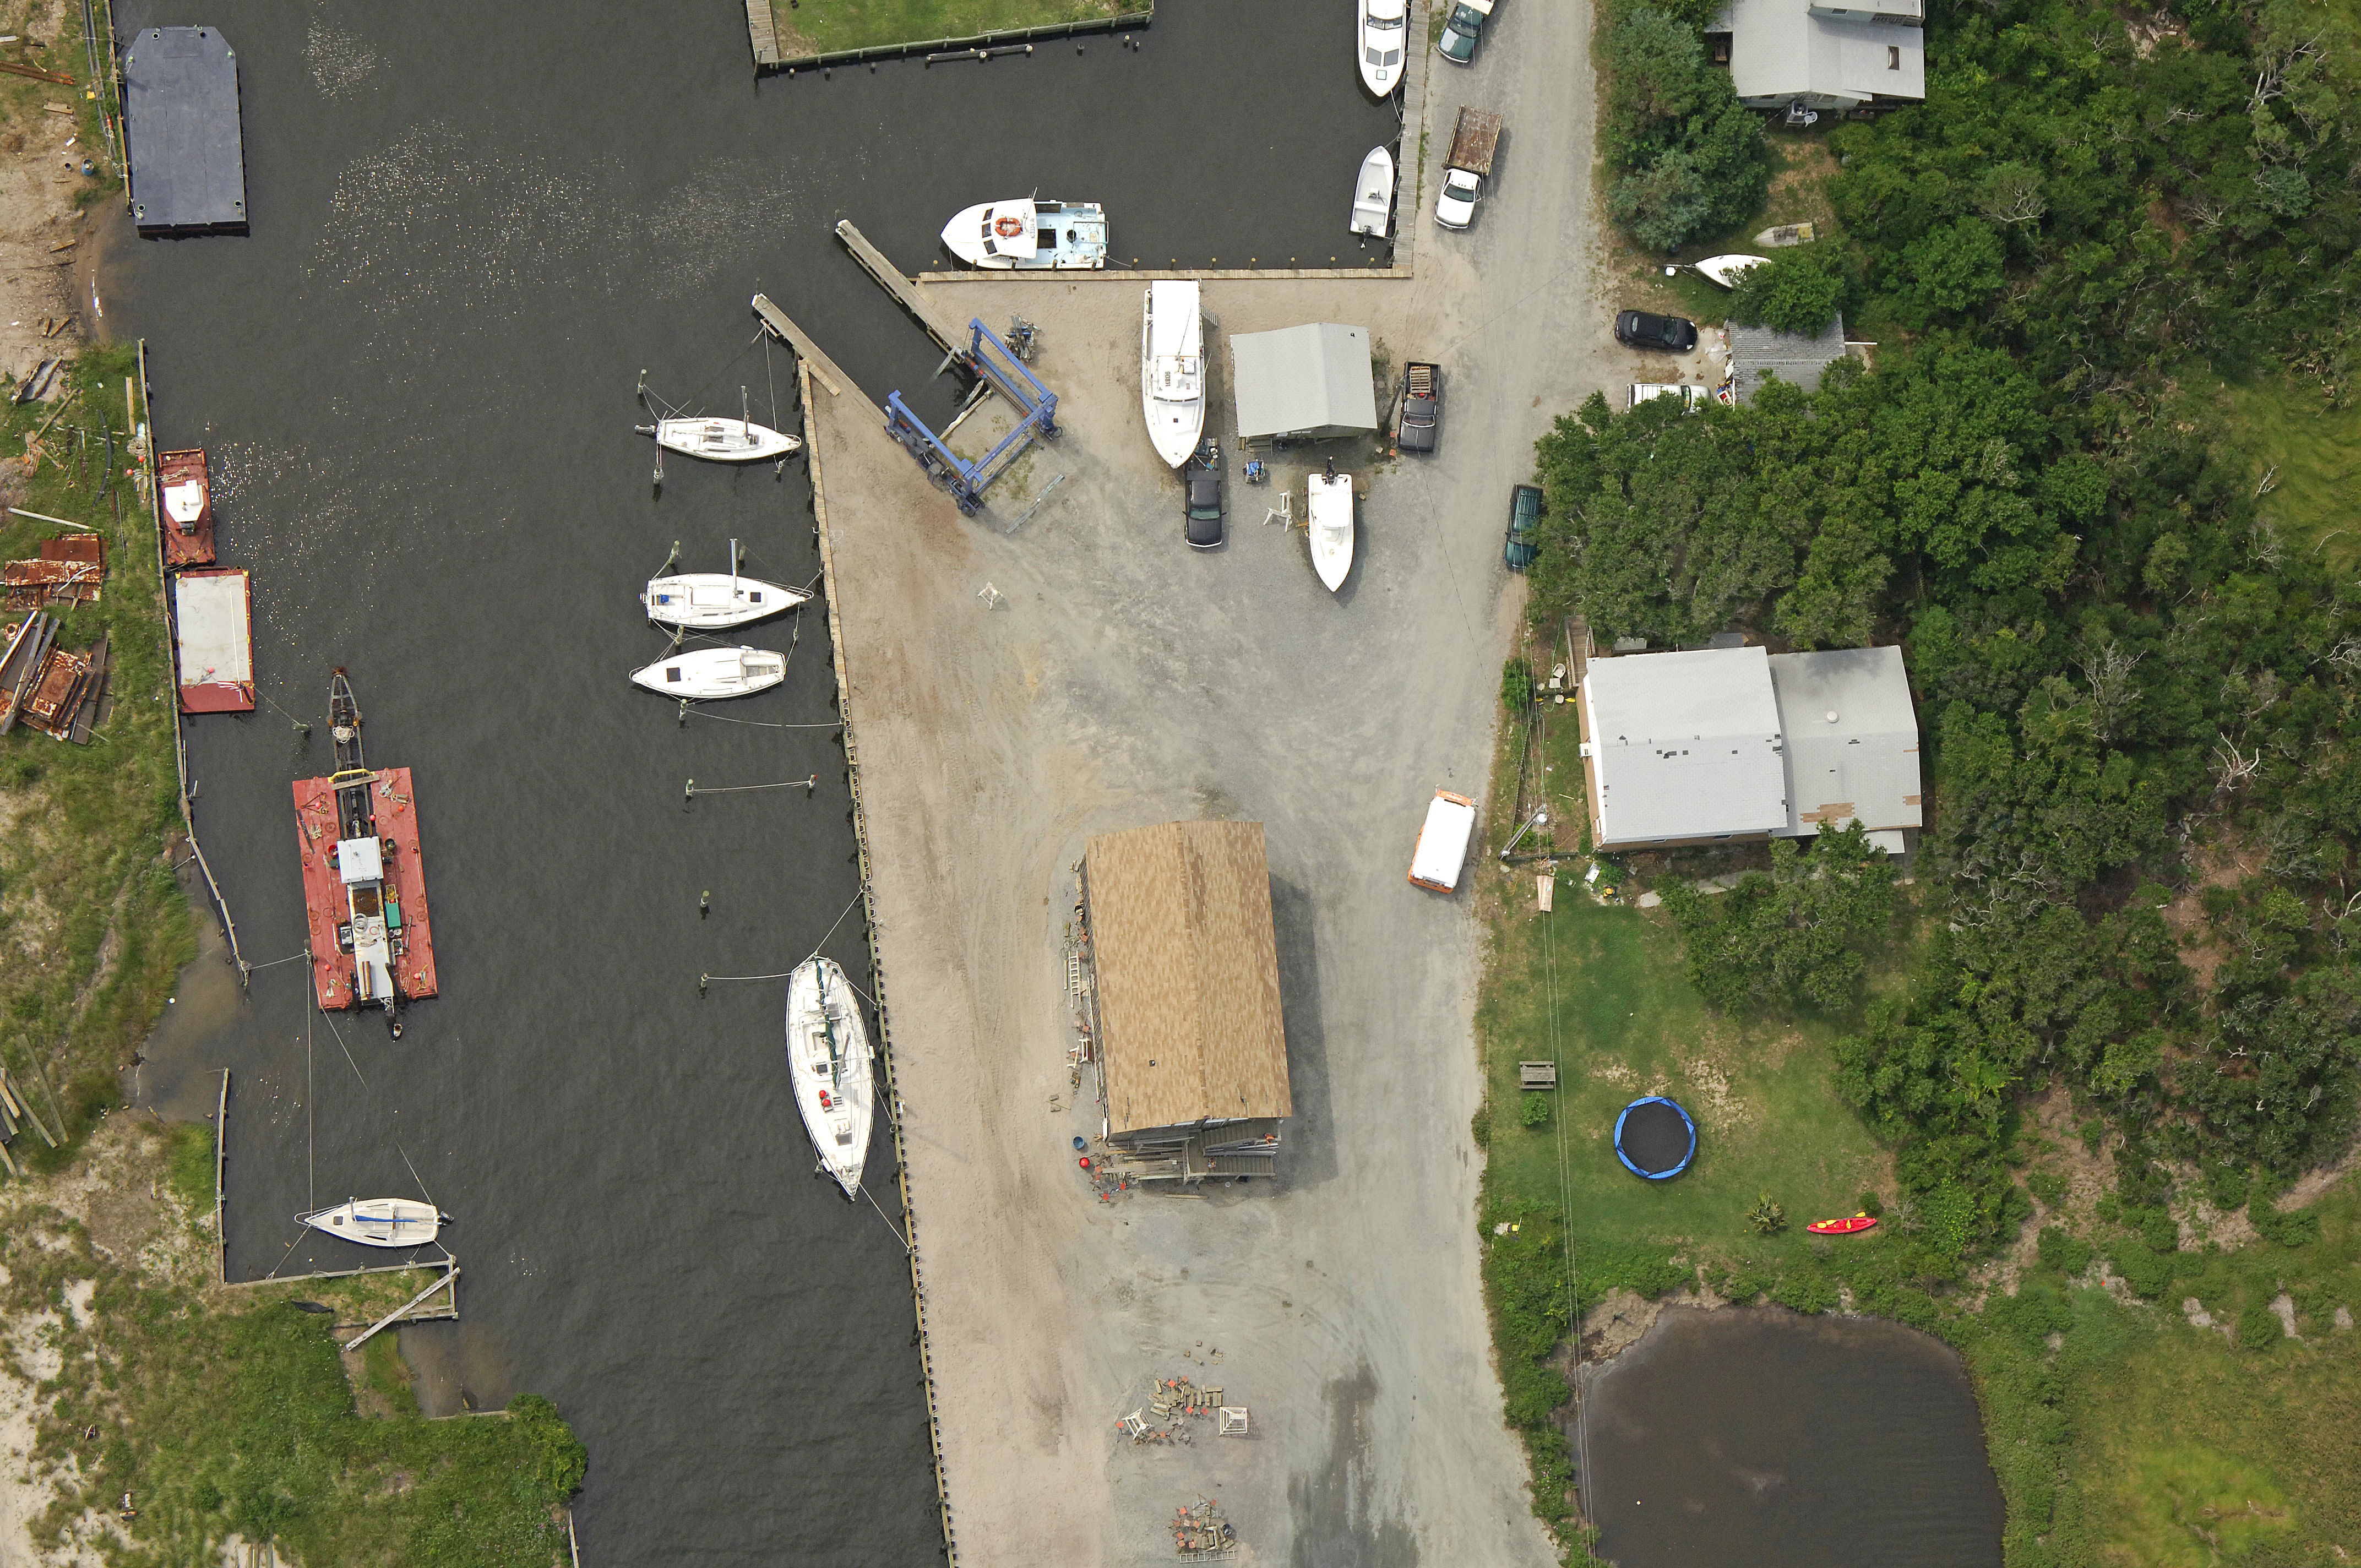 Scott boatyard in buxton nc united states marina reviews scott boatyard in buxton nc united states marina reviews phone number marinas nvjuhfo Gallery